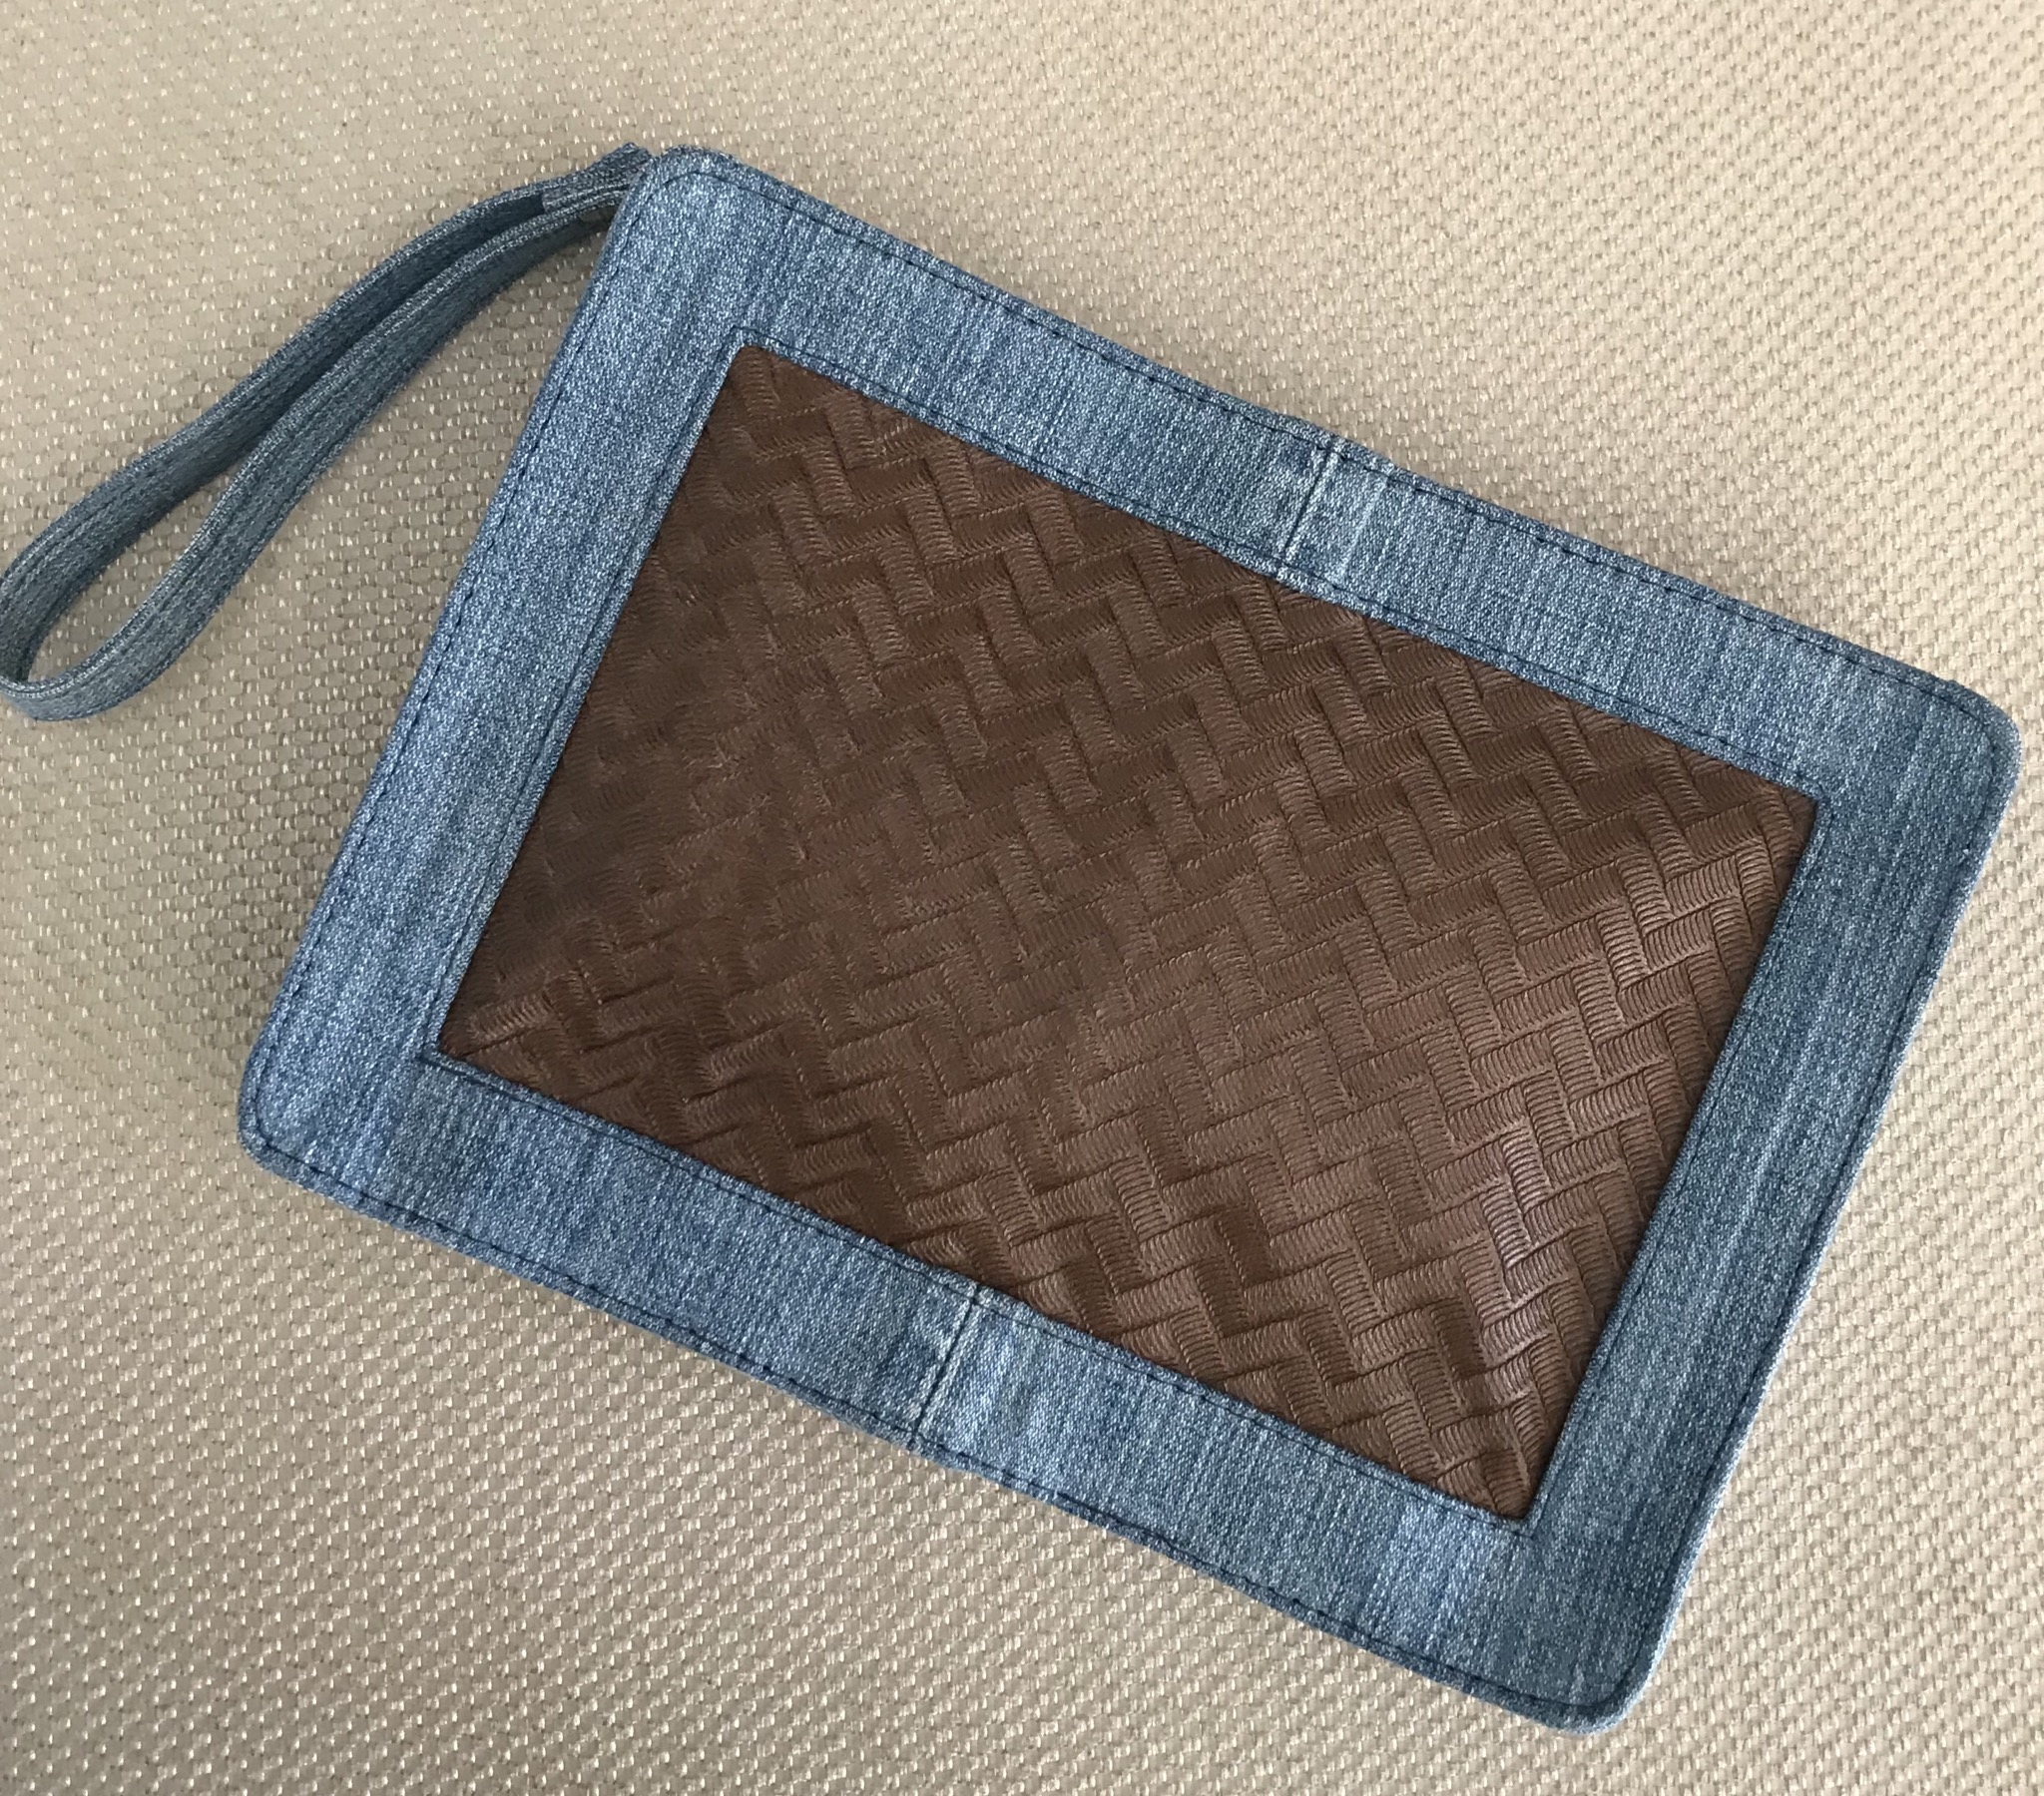 Purse blue jeans & Leather brown with chain